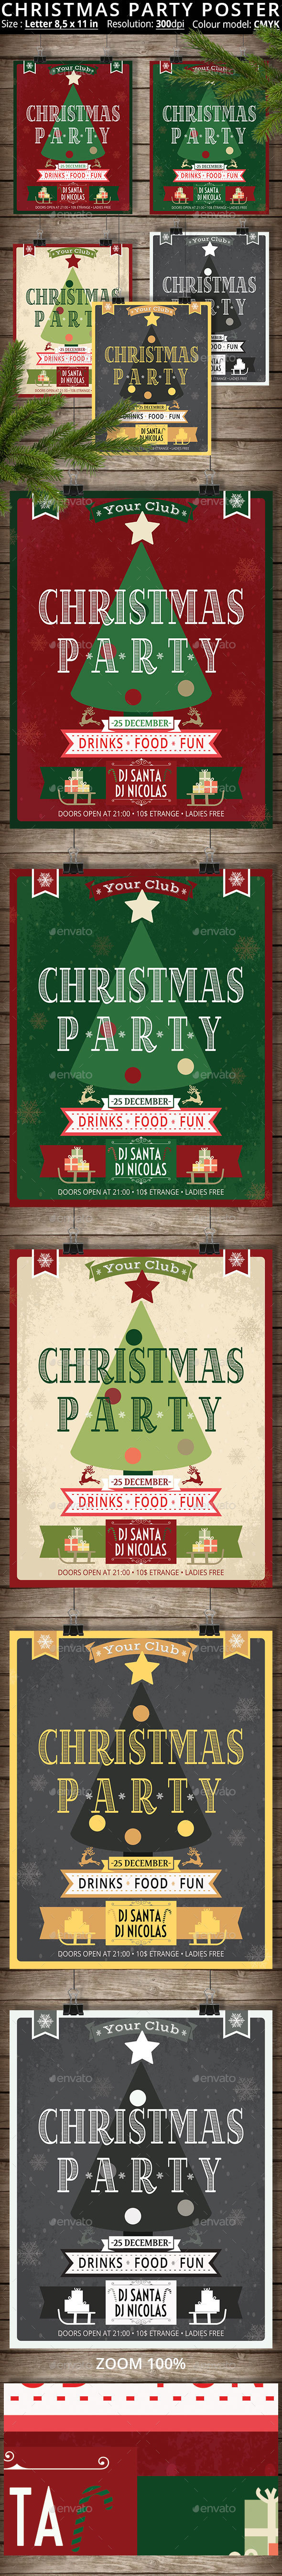 5 Posters Christmas Party - Cards & Invites Print Templates